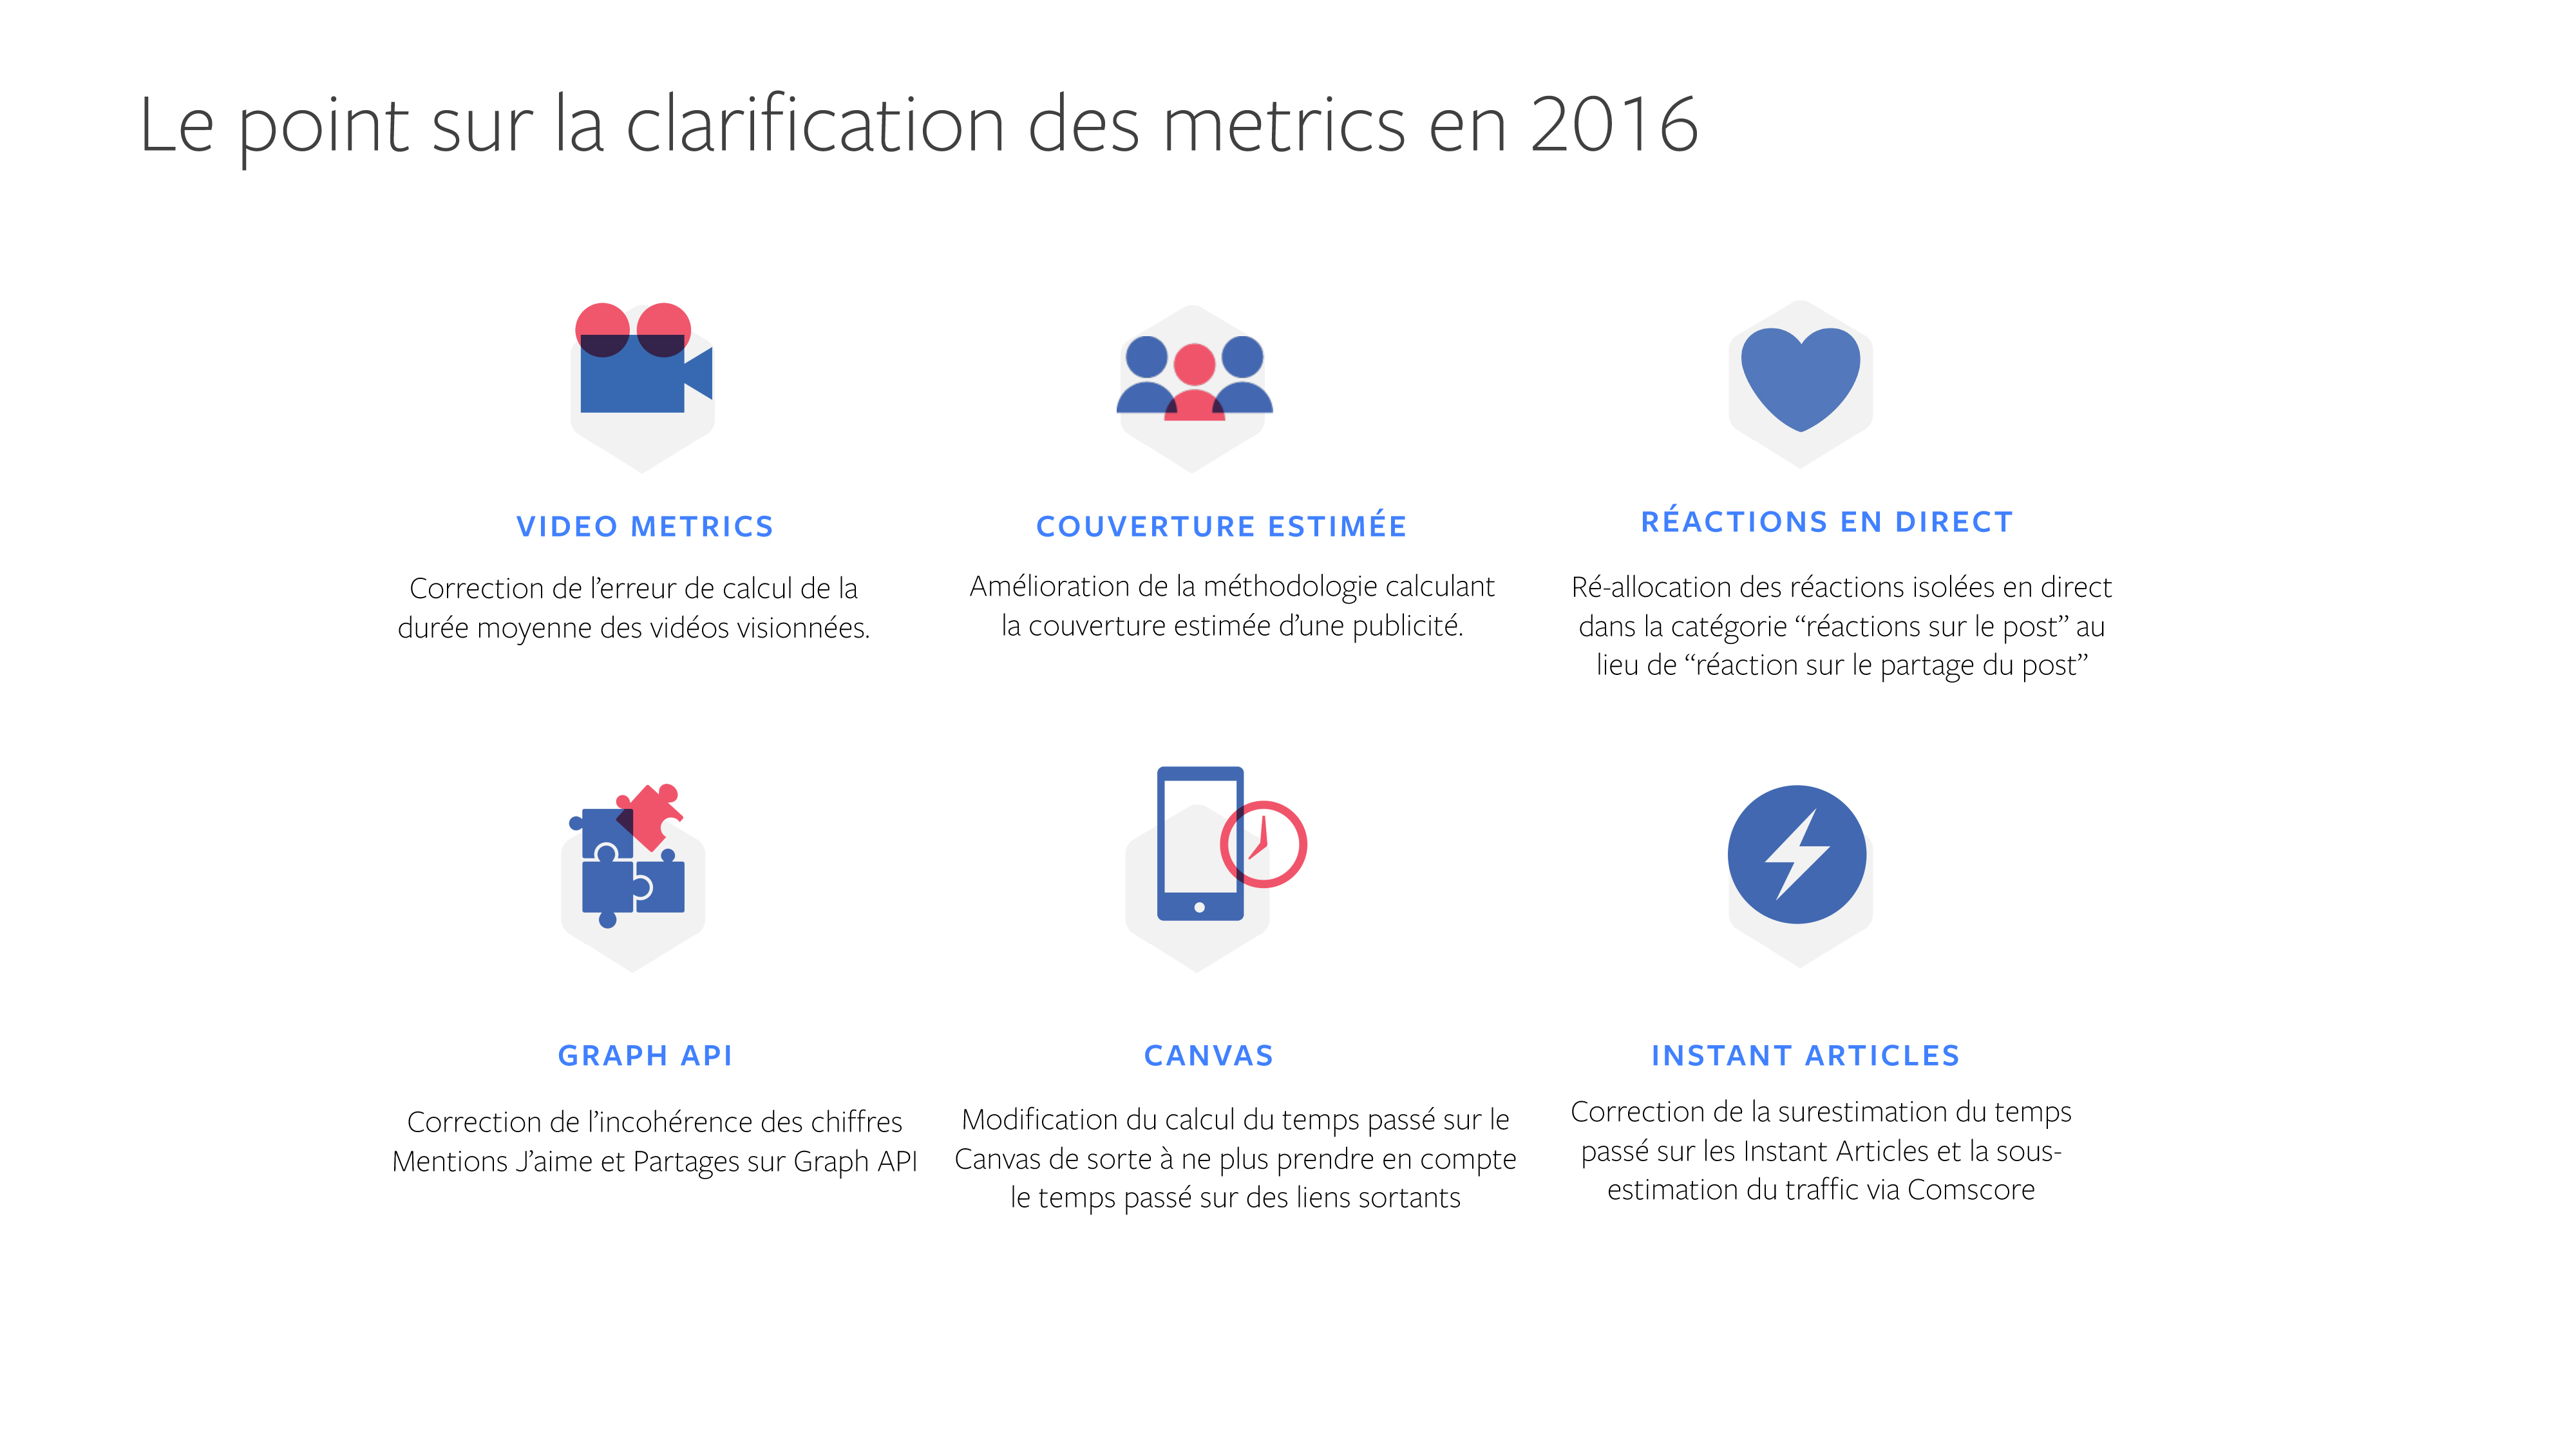 FacebookFrance&Metrics-February2017